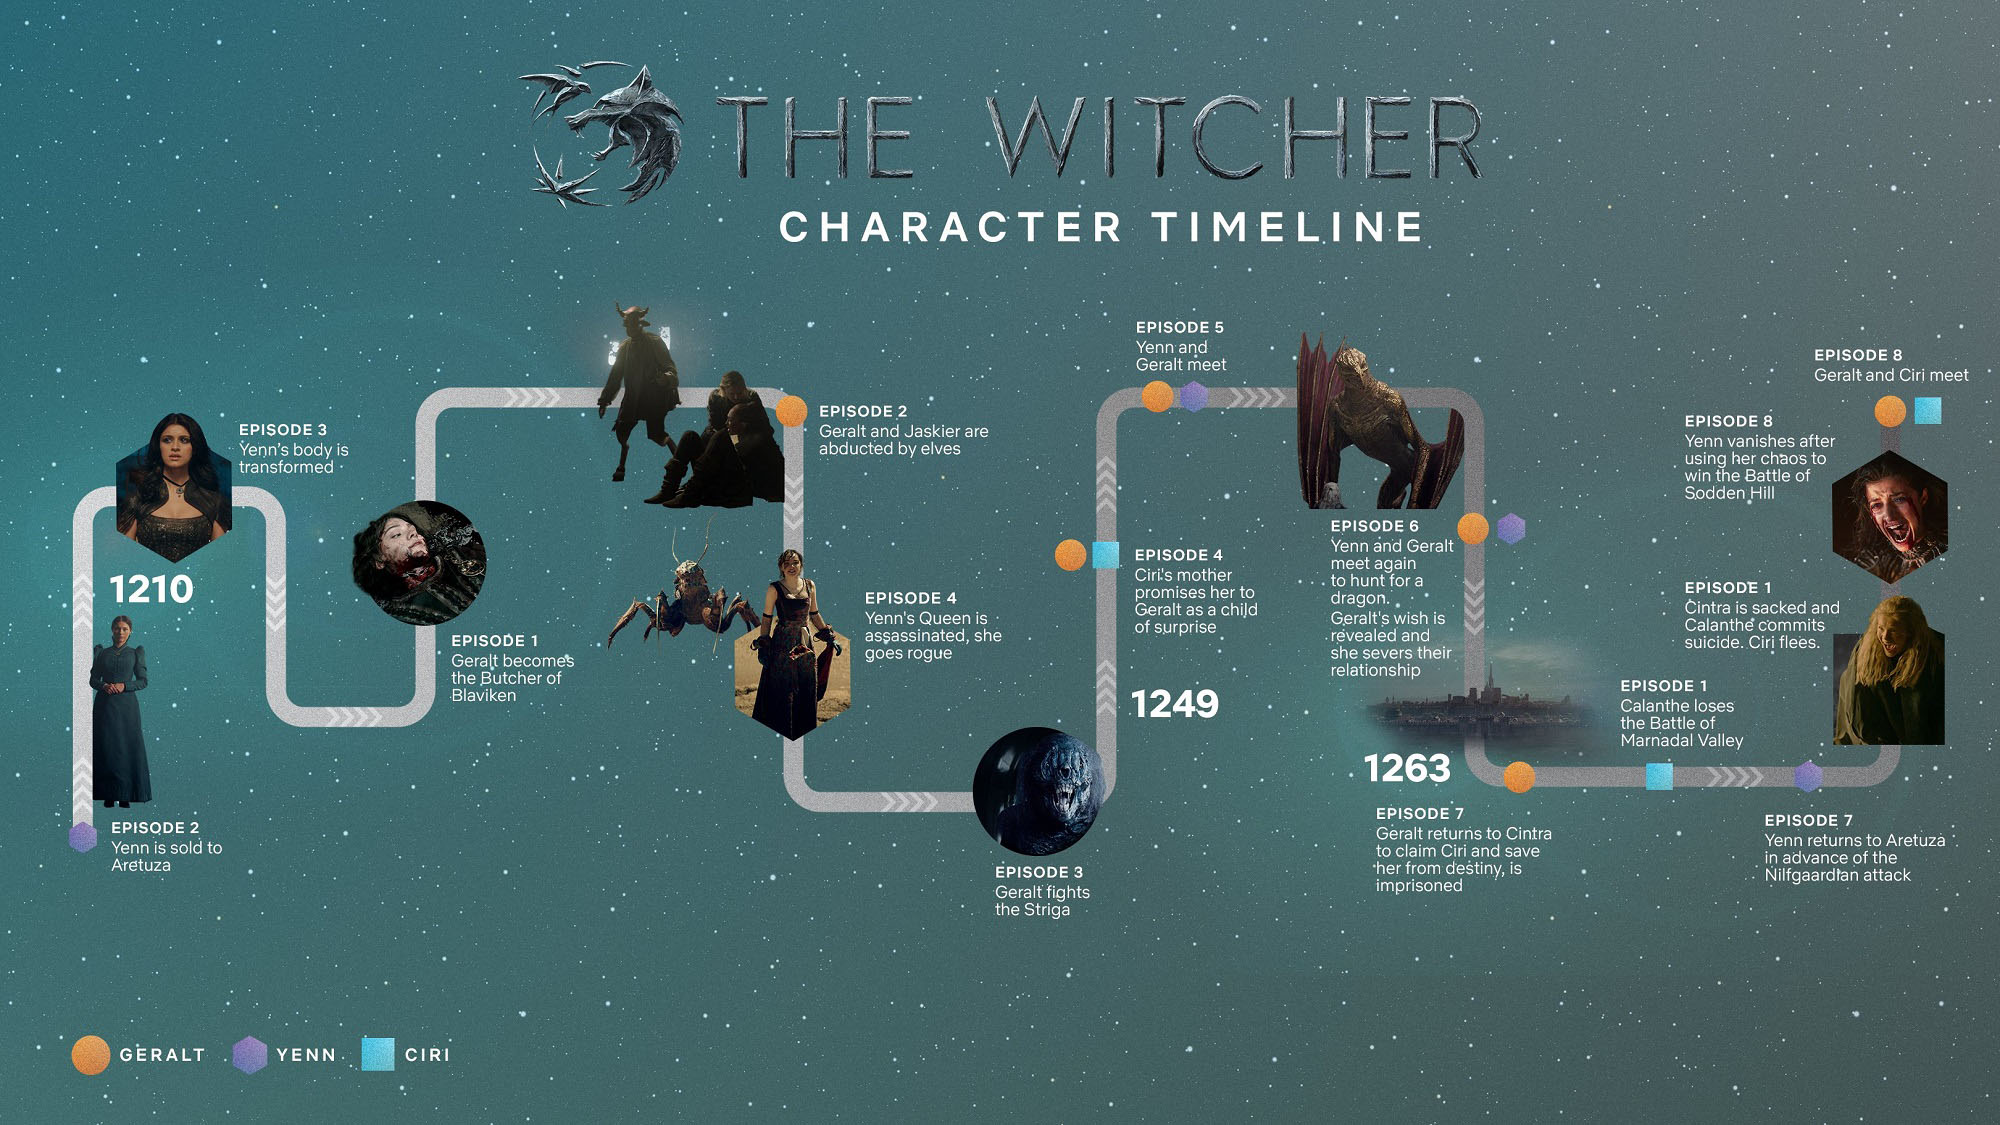 Cronología de The Witcher - Origen Netflix